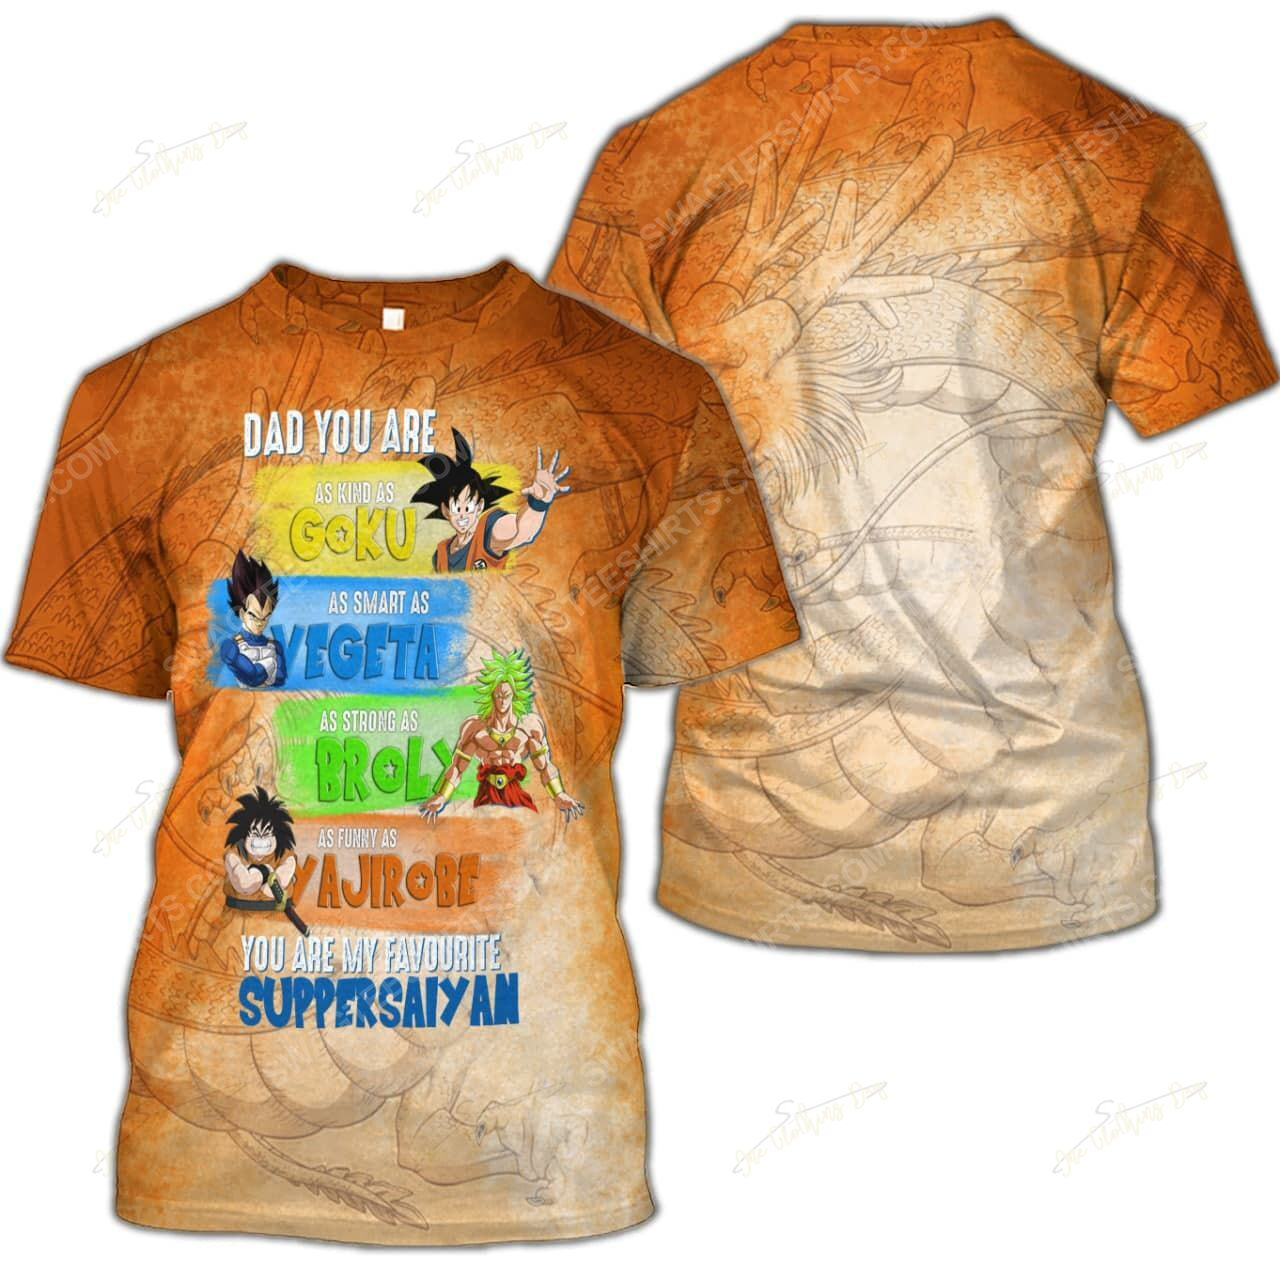 Fathers day dad you are as kind as goku dragon ball z shirt 2(1)